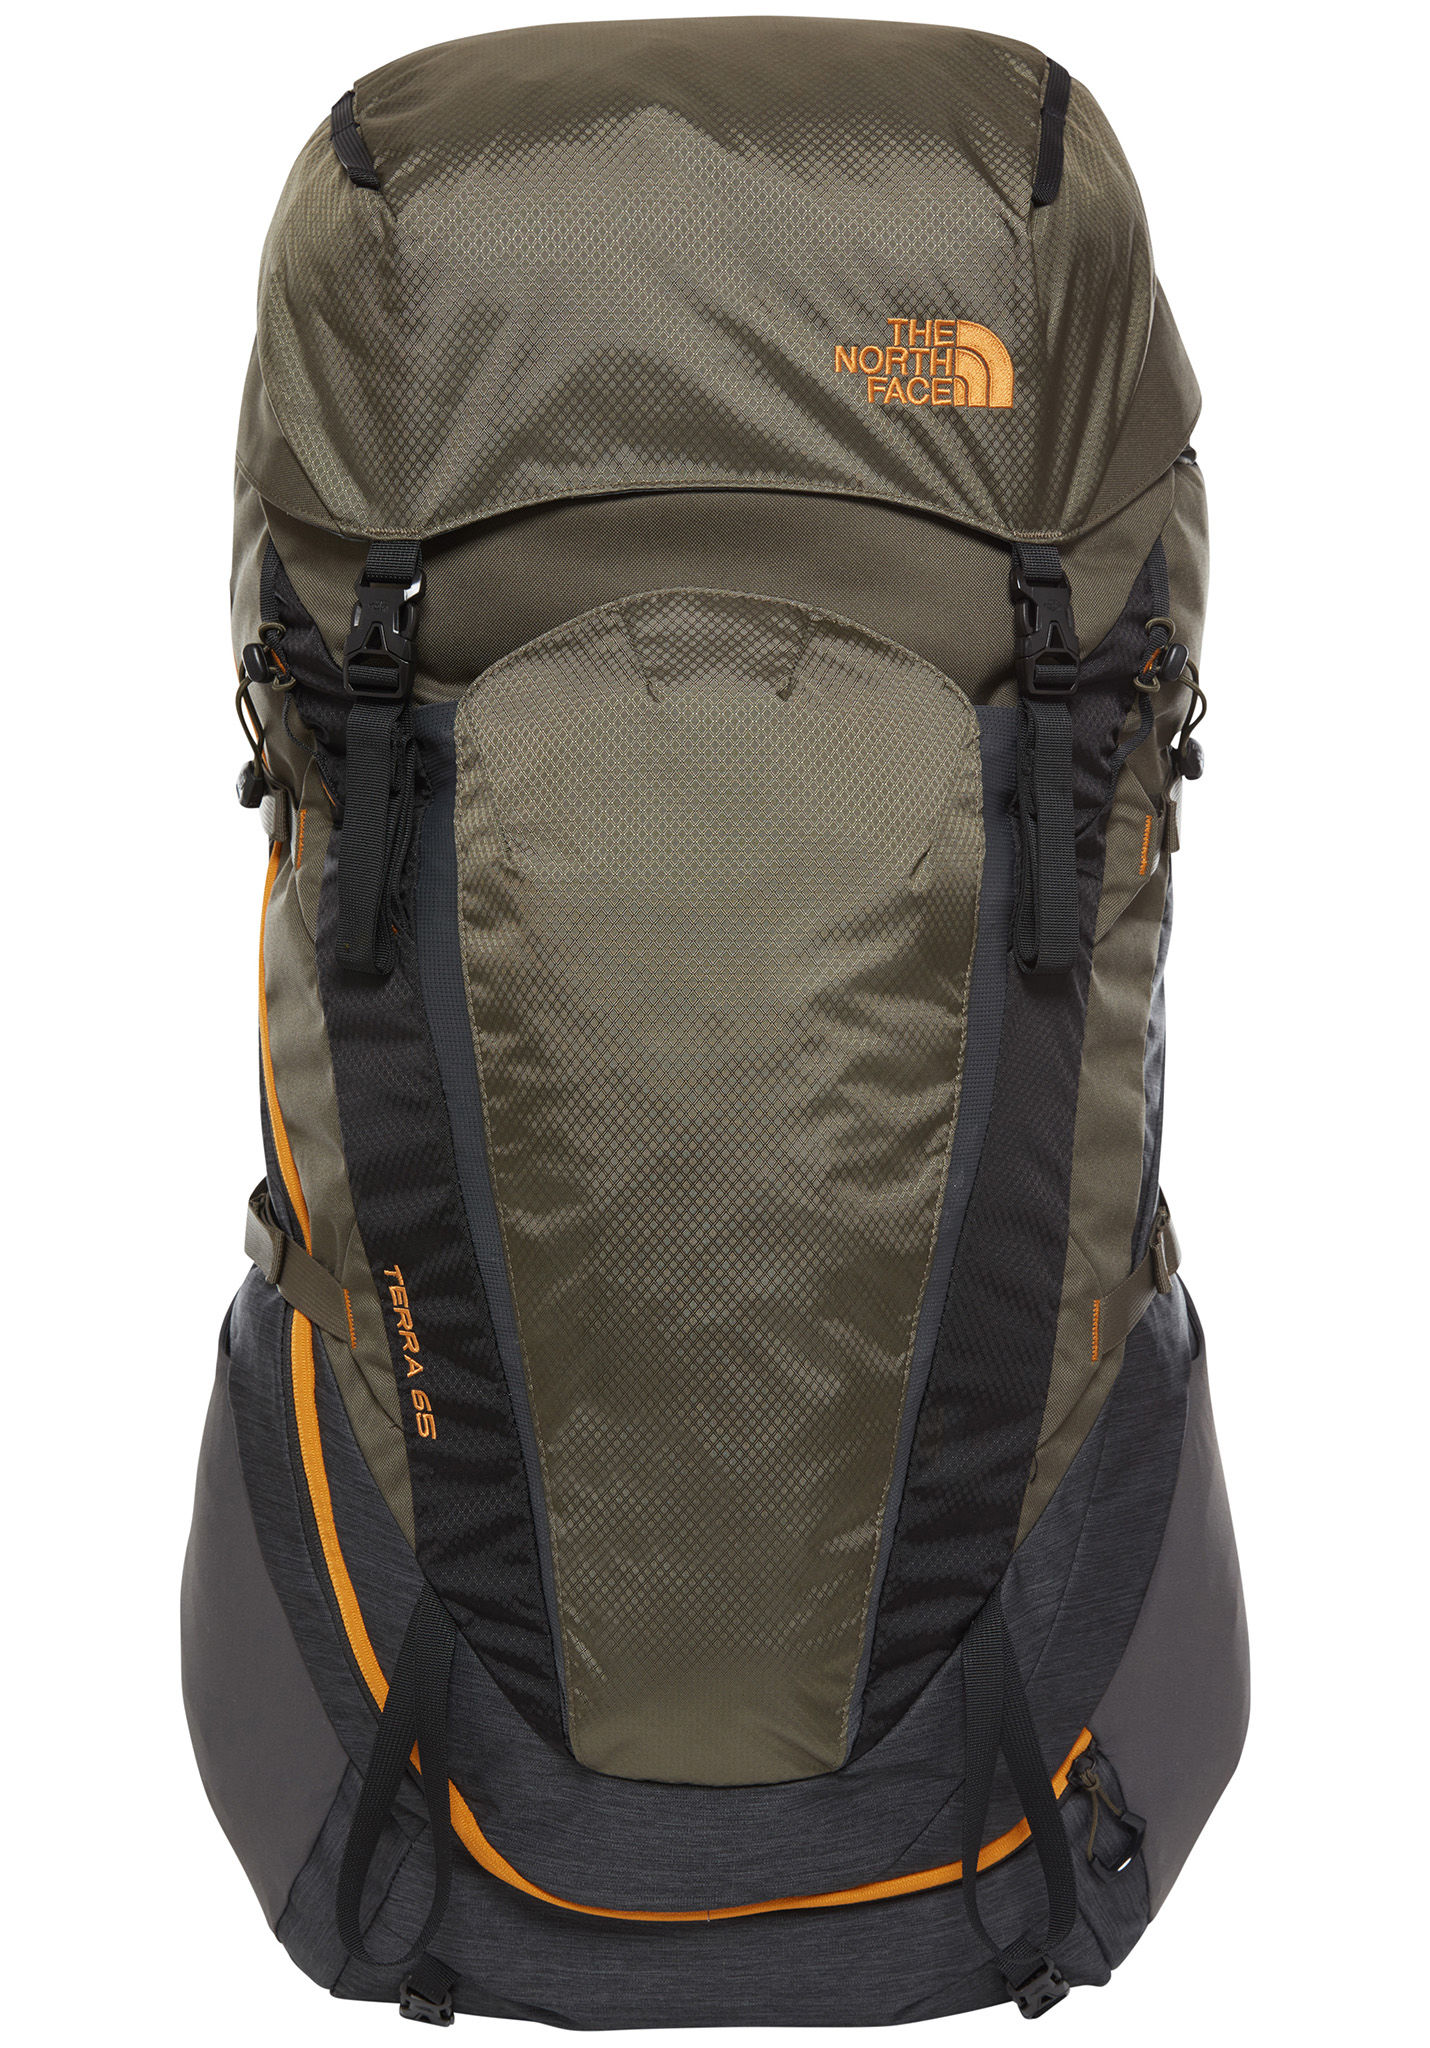 65l Verde Face Mochila Terra The North fgY67by